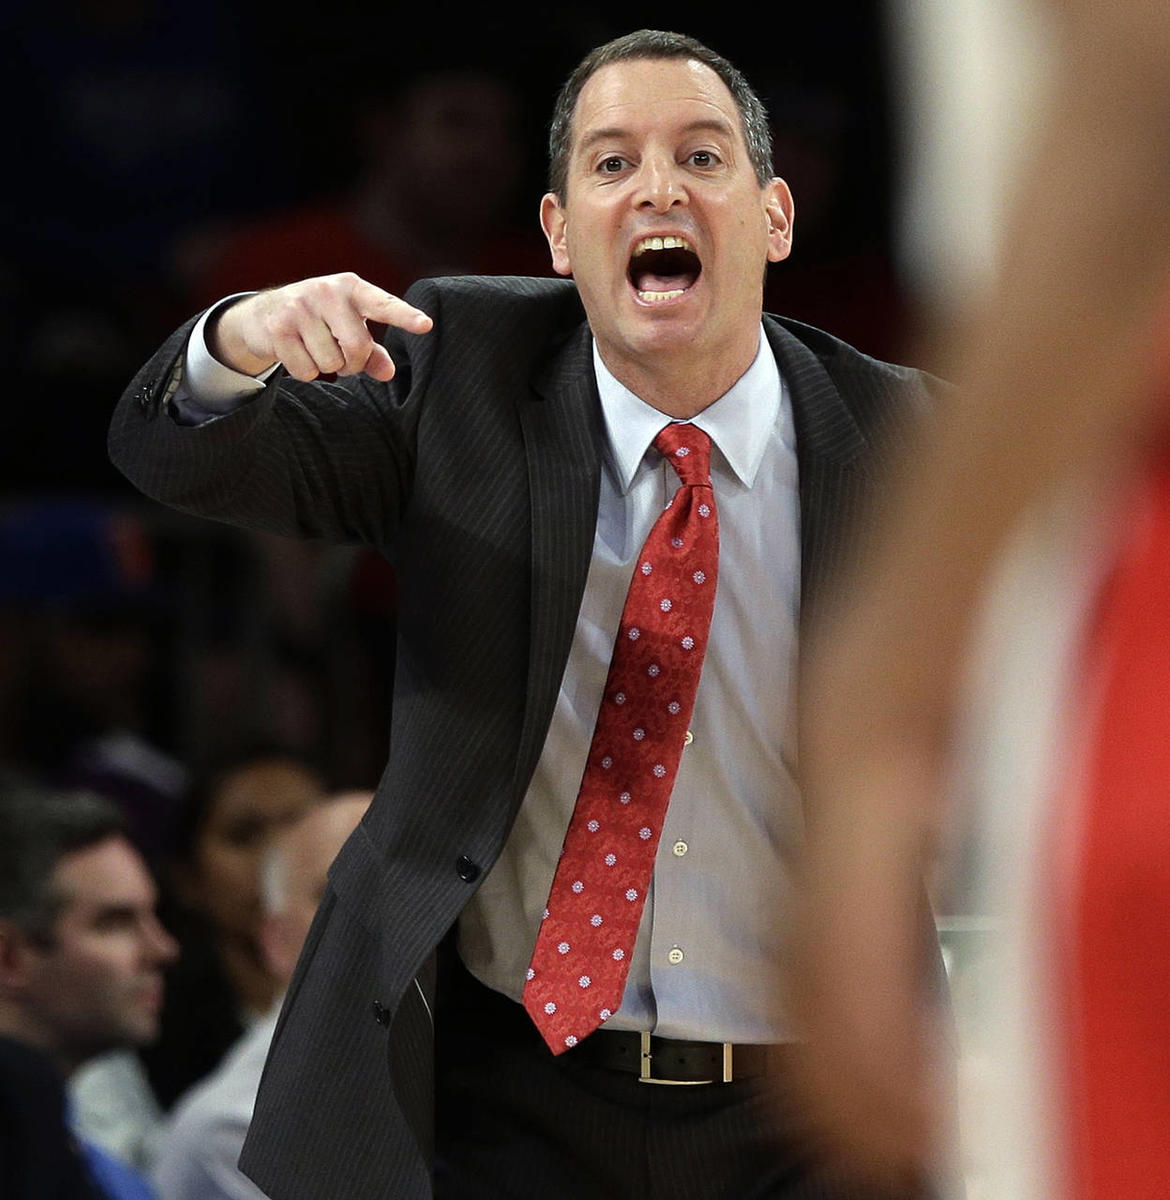 FILE - In this March 12, 2013, file photo, Rutgers coach Mike Rice yells out to his team during an NCAA college basketball game against DePaul at the Big East tournament in New York. The videotape, broadcast Tuesday, April 2, on ESPN, prompted scores of o